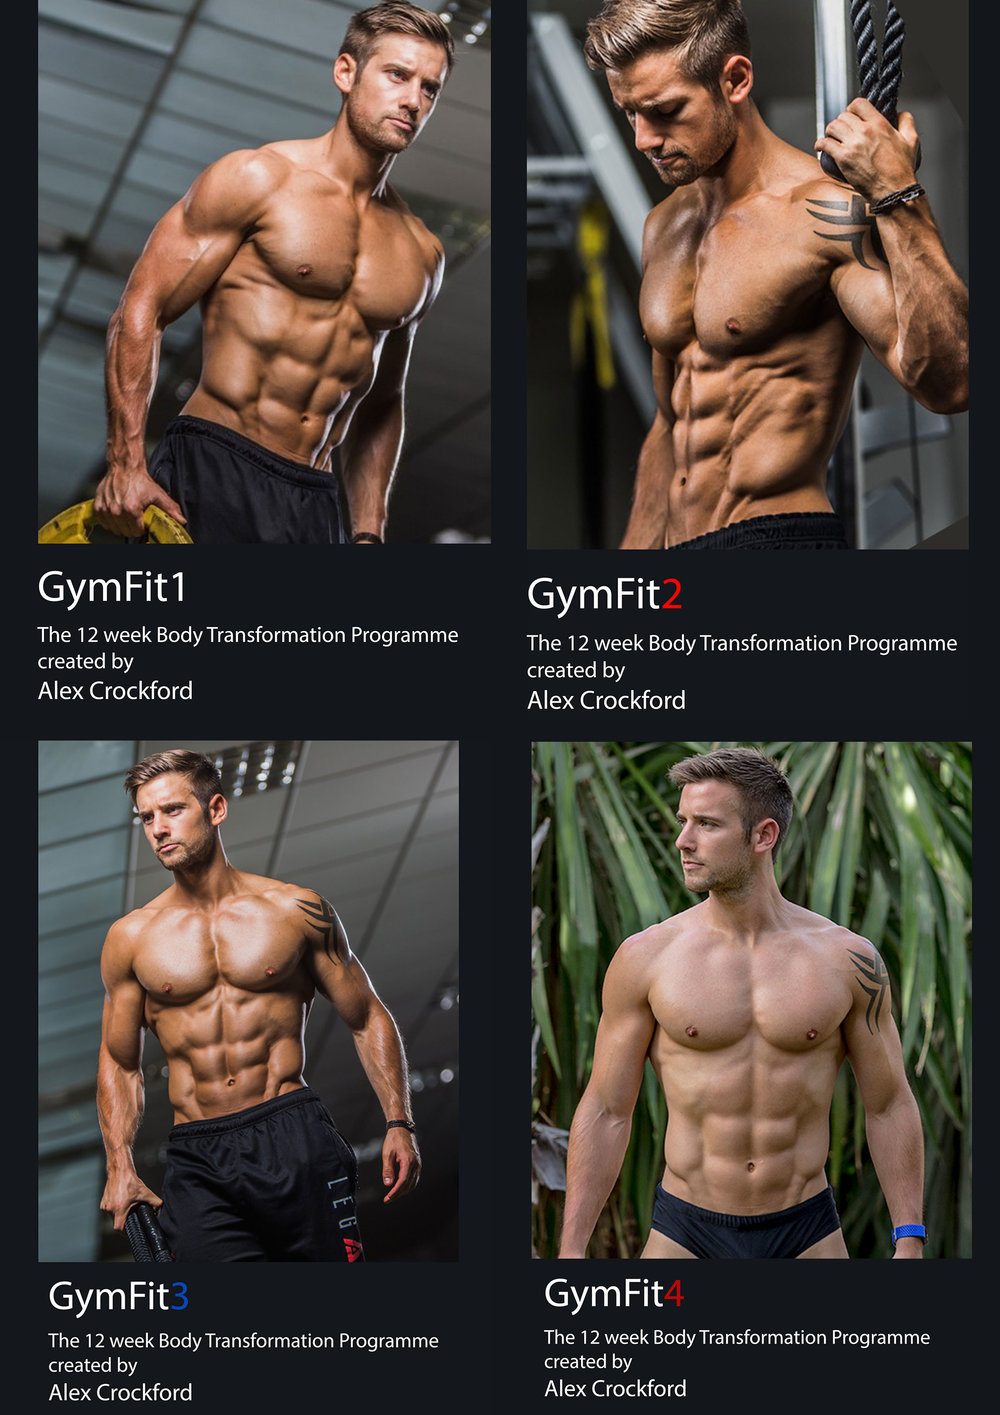 GymFit---1-year-plan.jpg